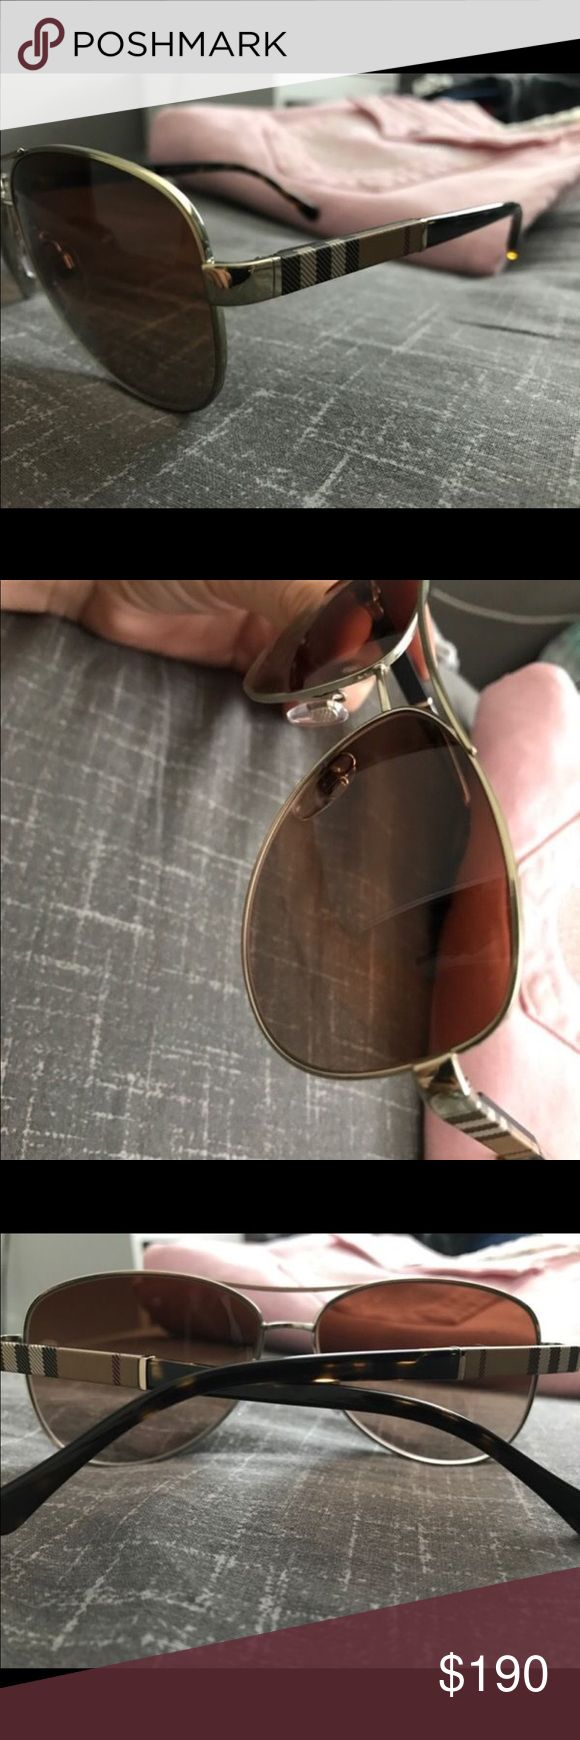 Burberry Sunglasses Burberry sunglasses, brand new! Burberry Accessories Glasses